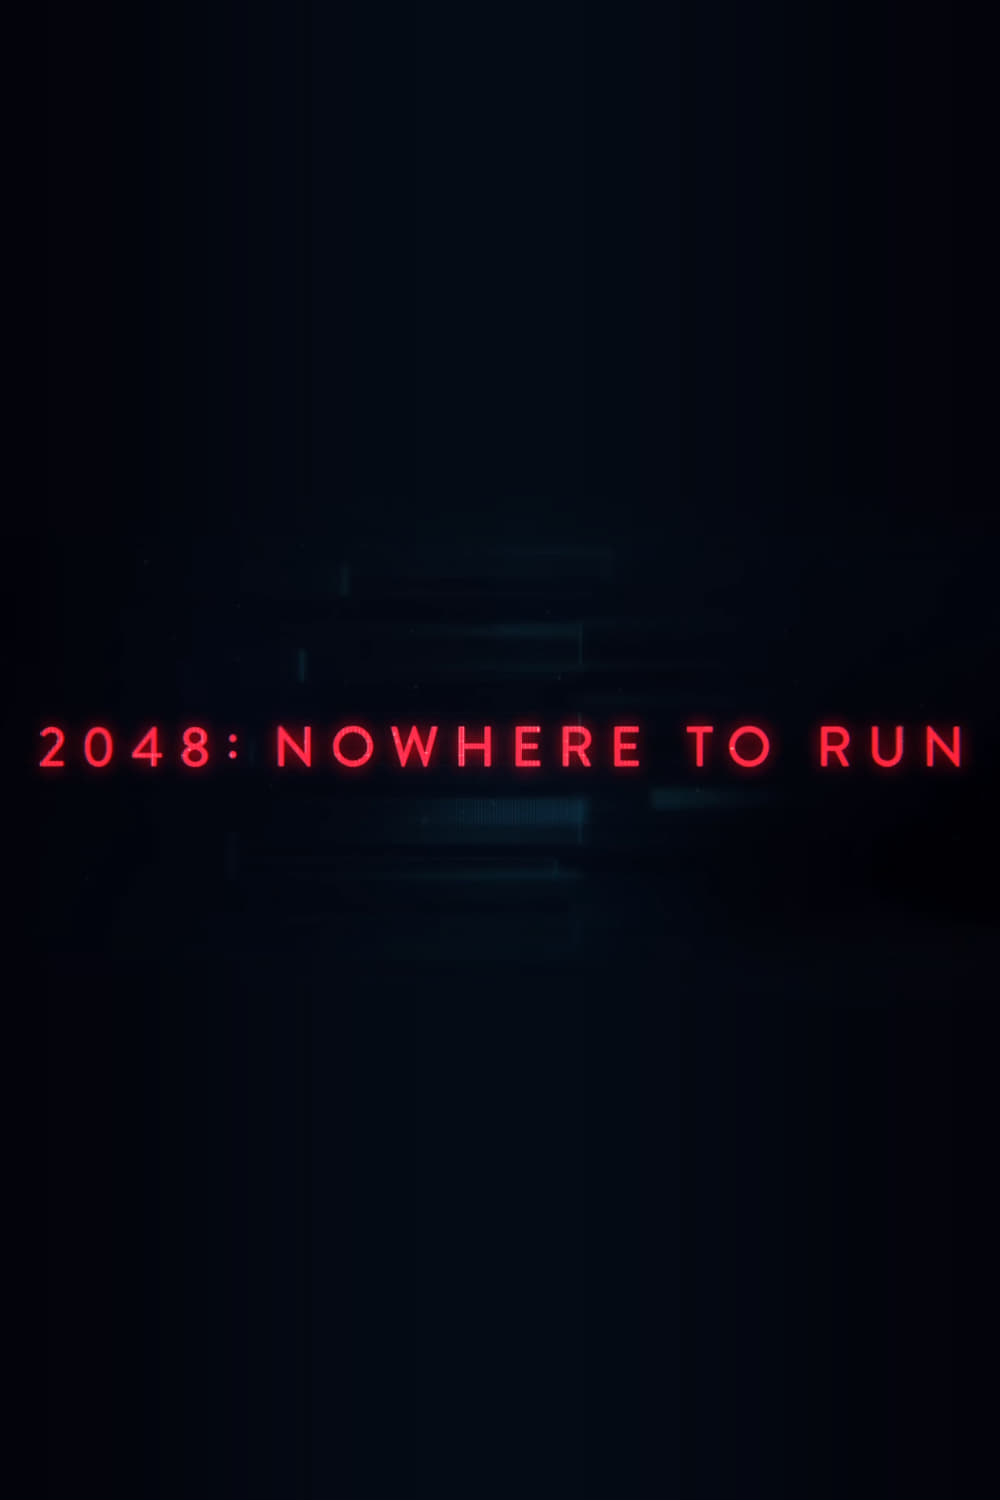 2048: Nowhere to Run